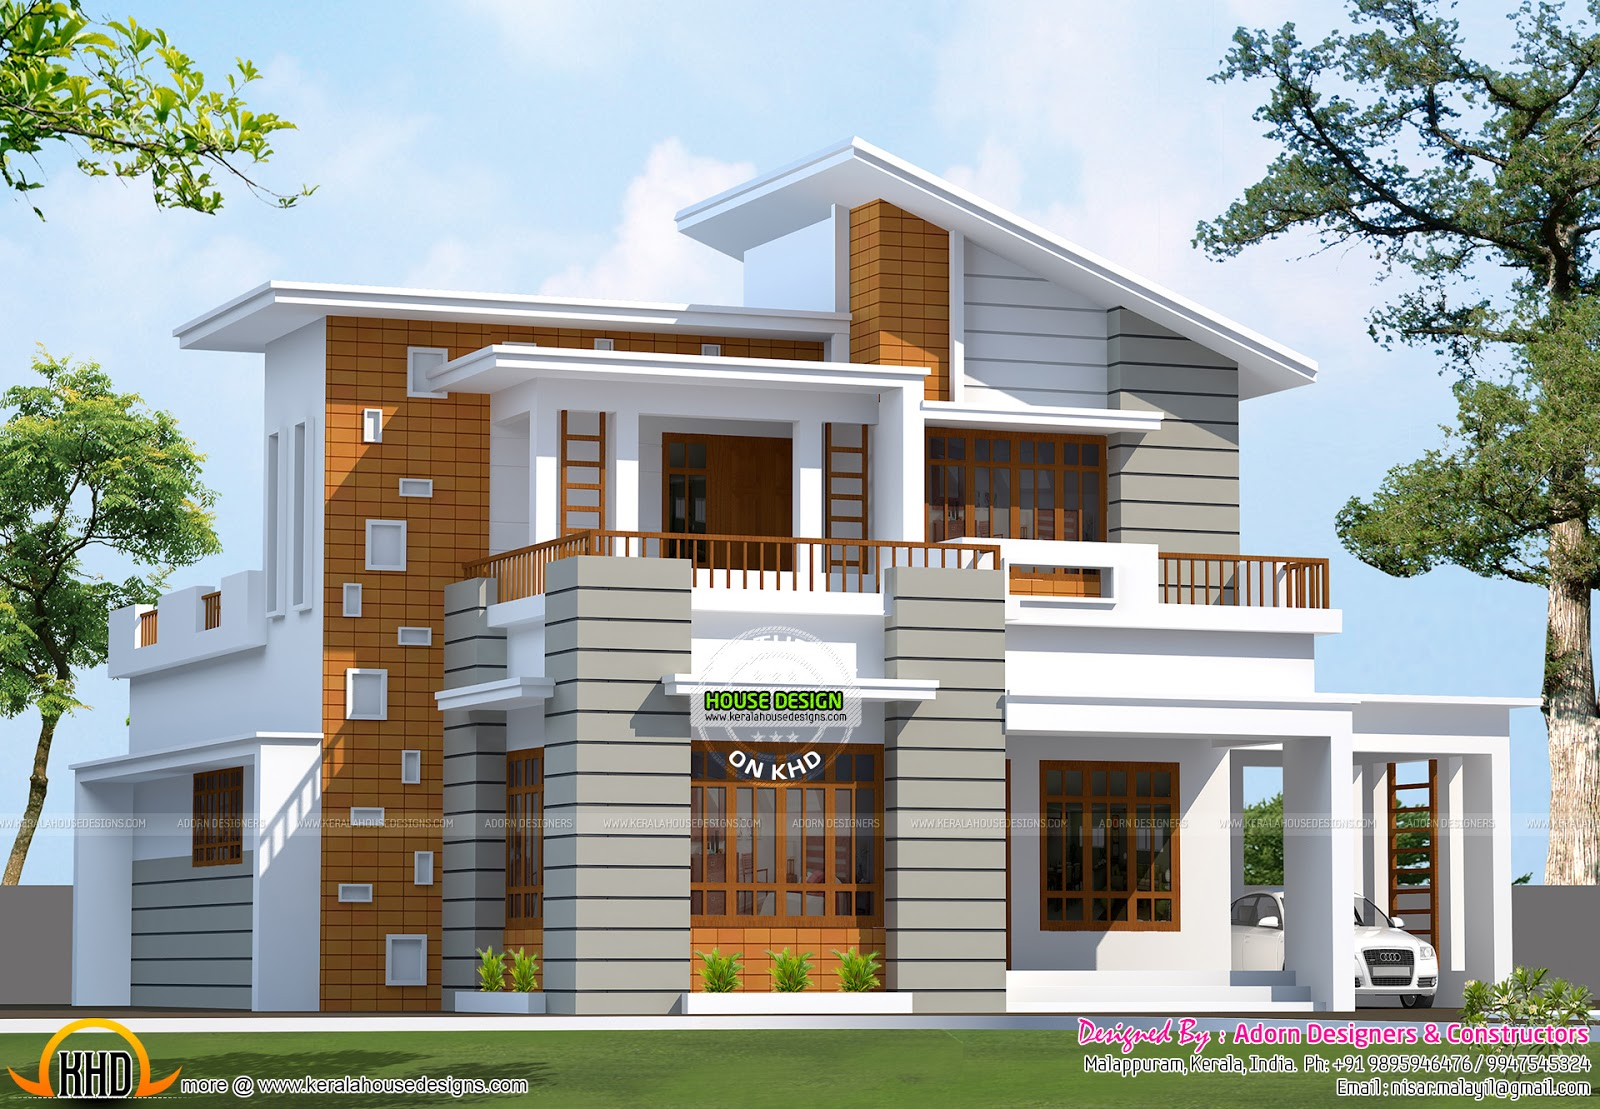 Indian house outlook design modern house for Home design images